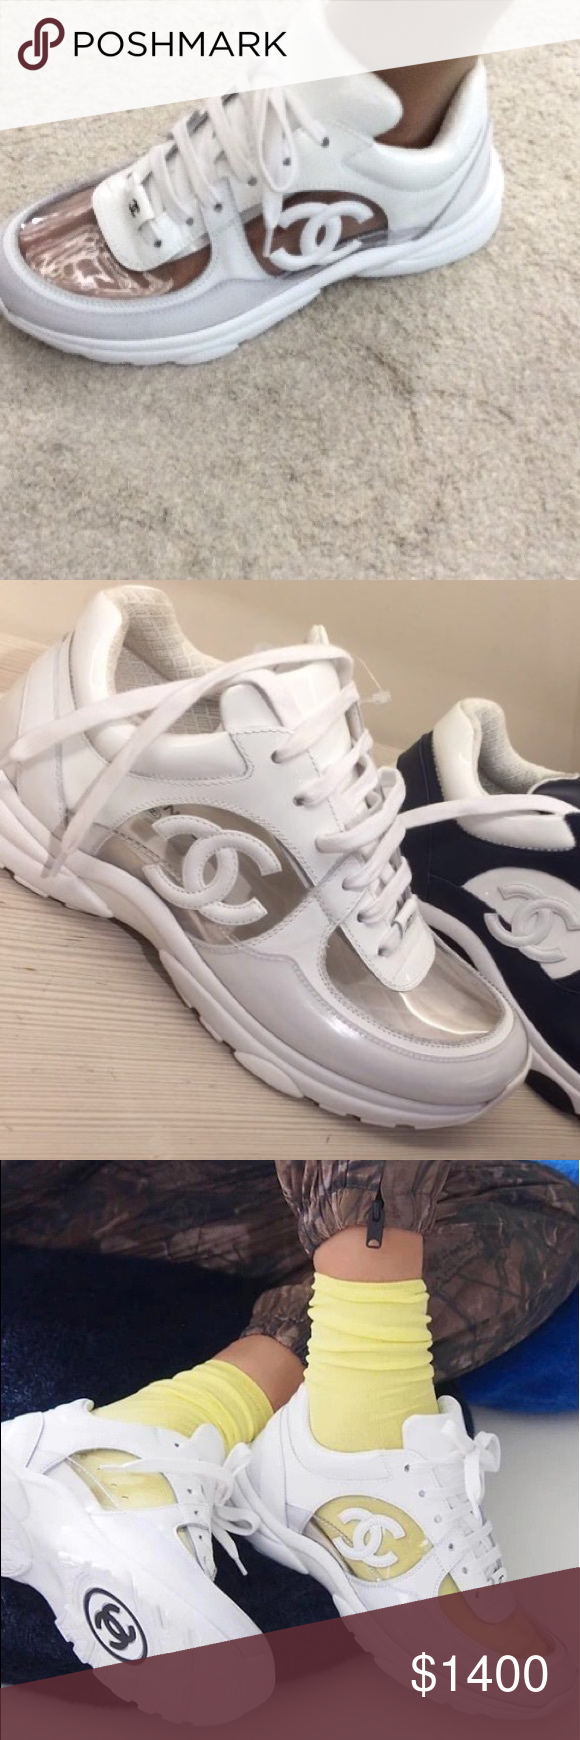 ae72348afb6 Chanel Runway Clear Transparent Sneakers PVC Extremely rare!! Sold out  everywhere. Brand new from Chanel boutique - box